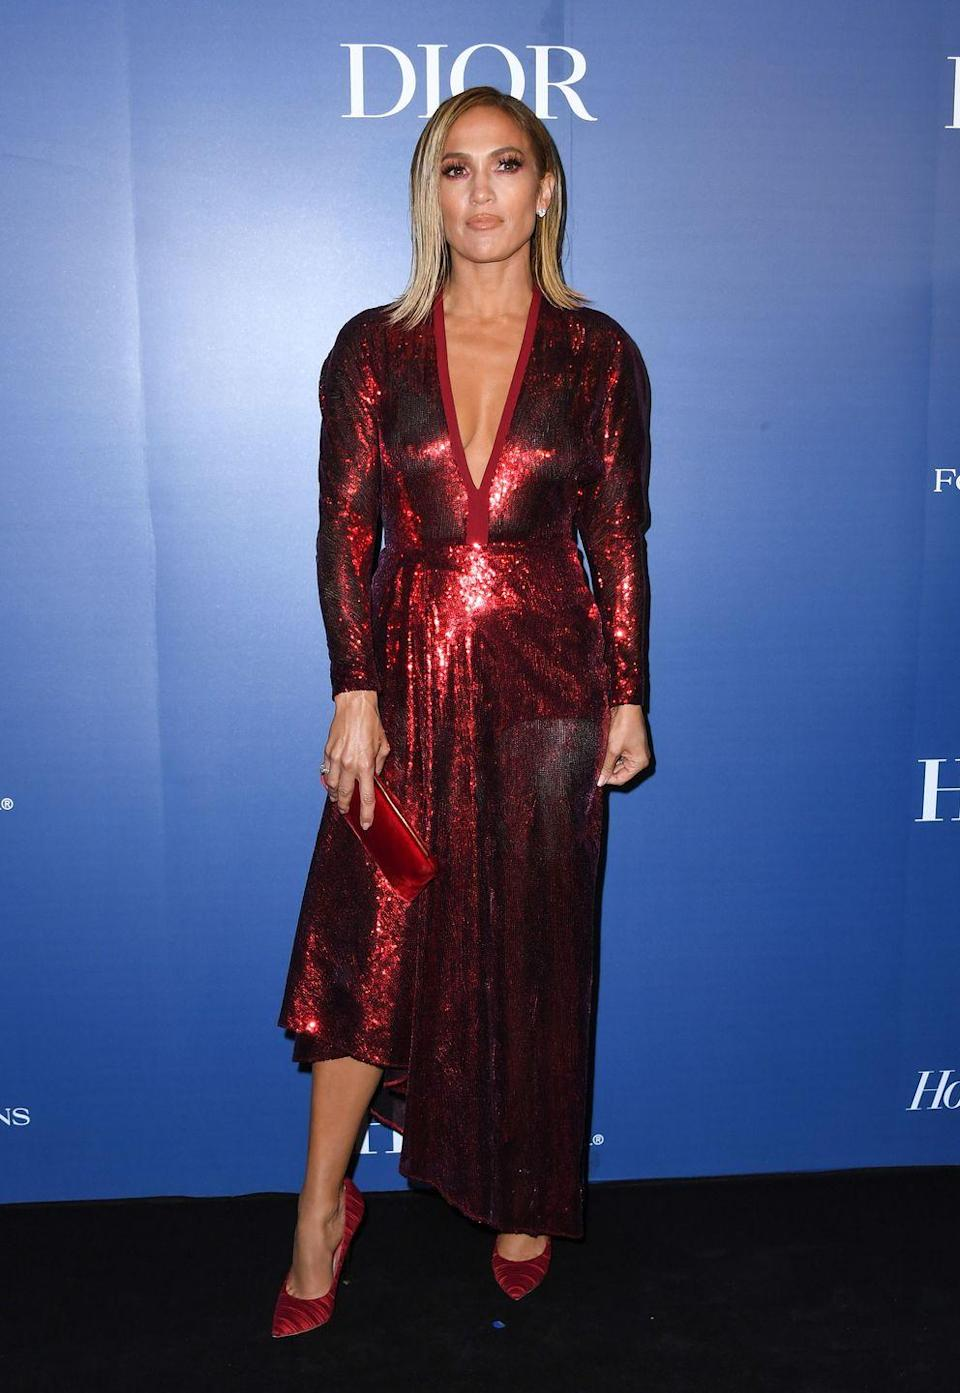 <p>Damn, does she look good in all red. That same day, at the Toronto International Film Festival, she wears a long-sleeve dress dripping in sequins and coordinating accessories. </p>